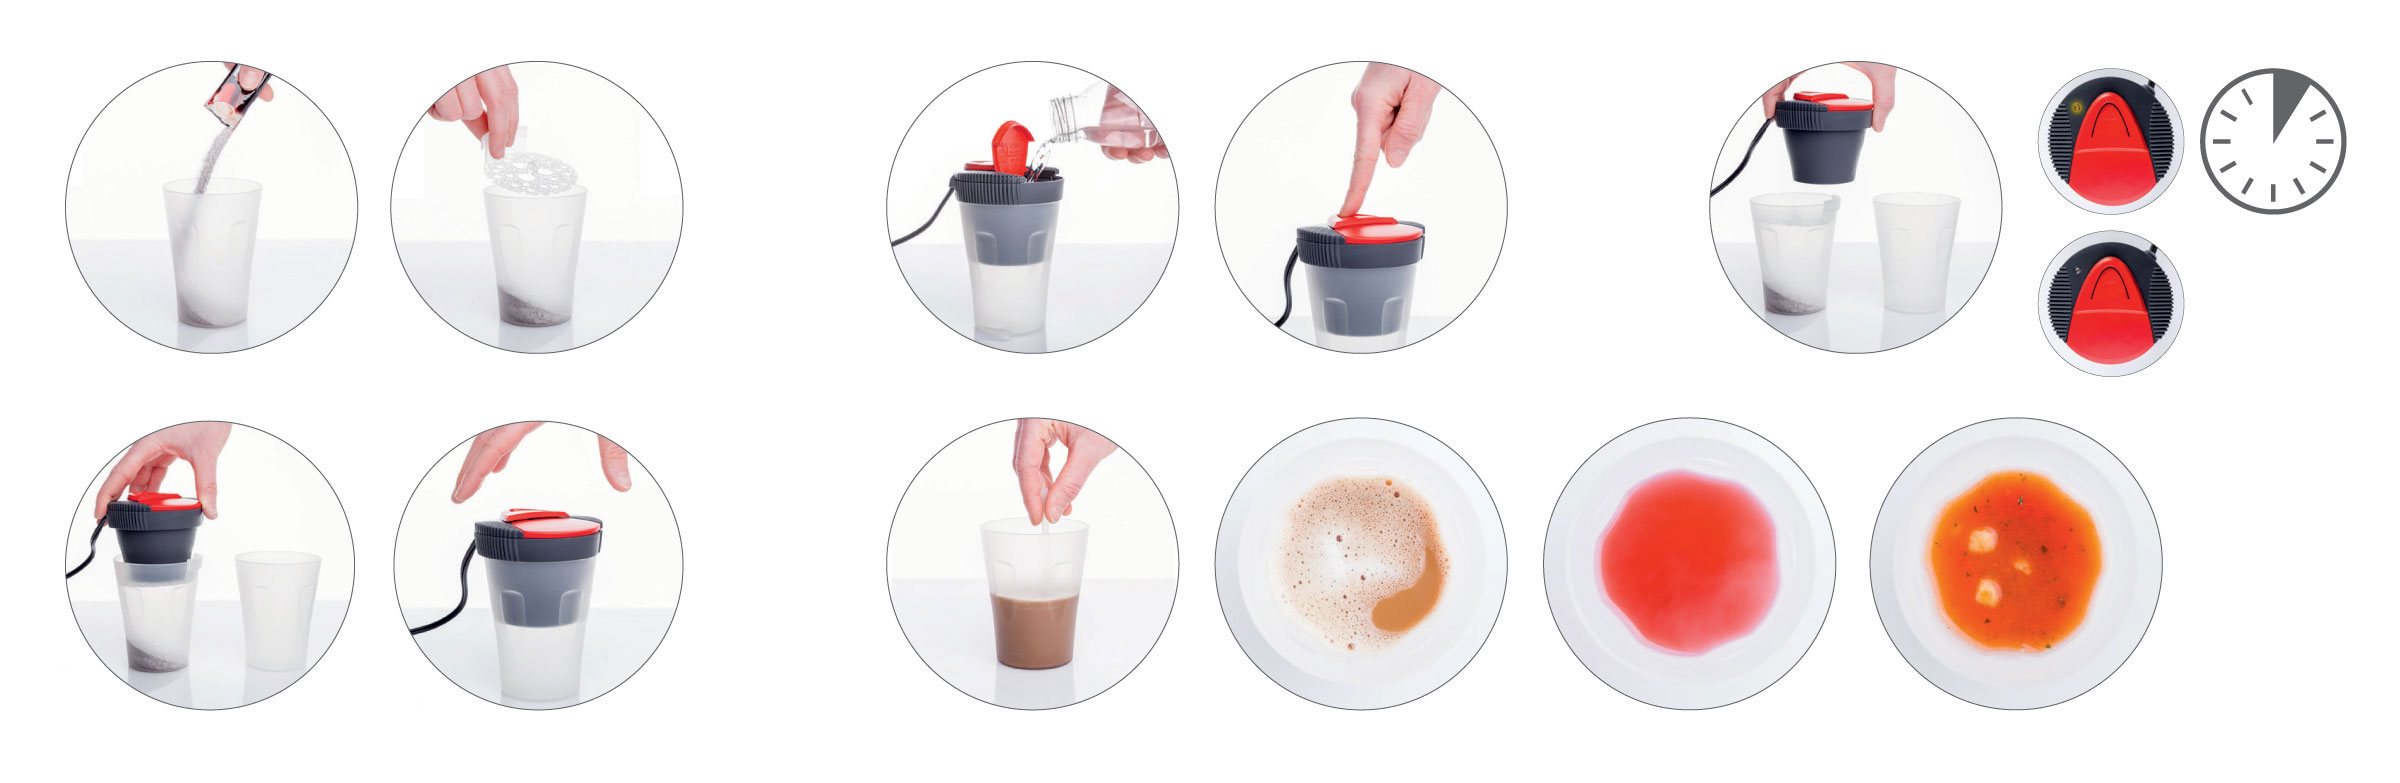 hot-e-cup_packaging-3